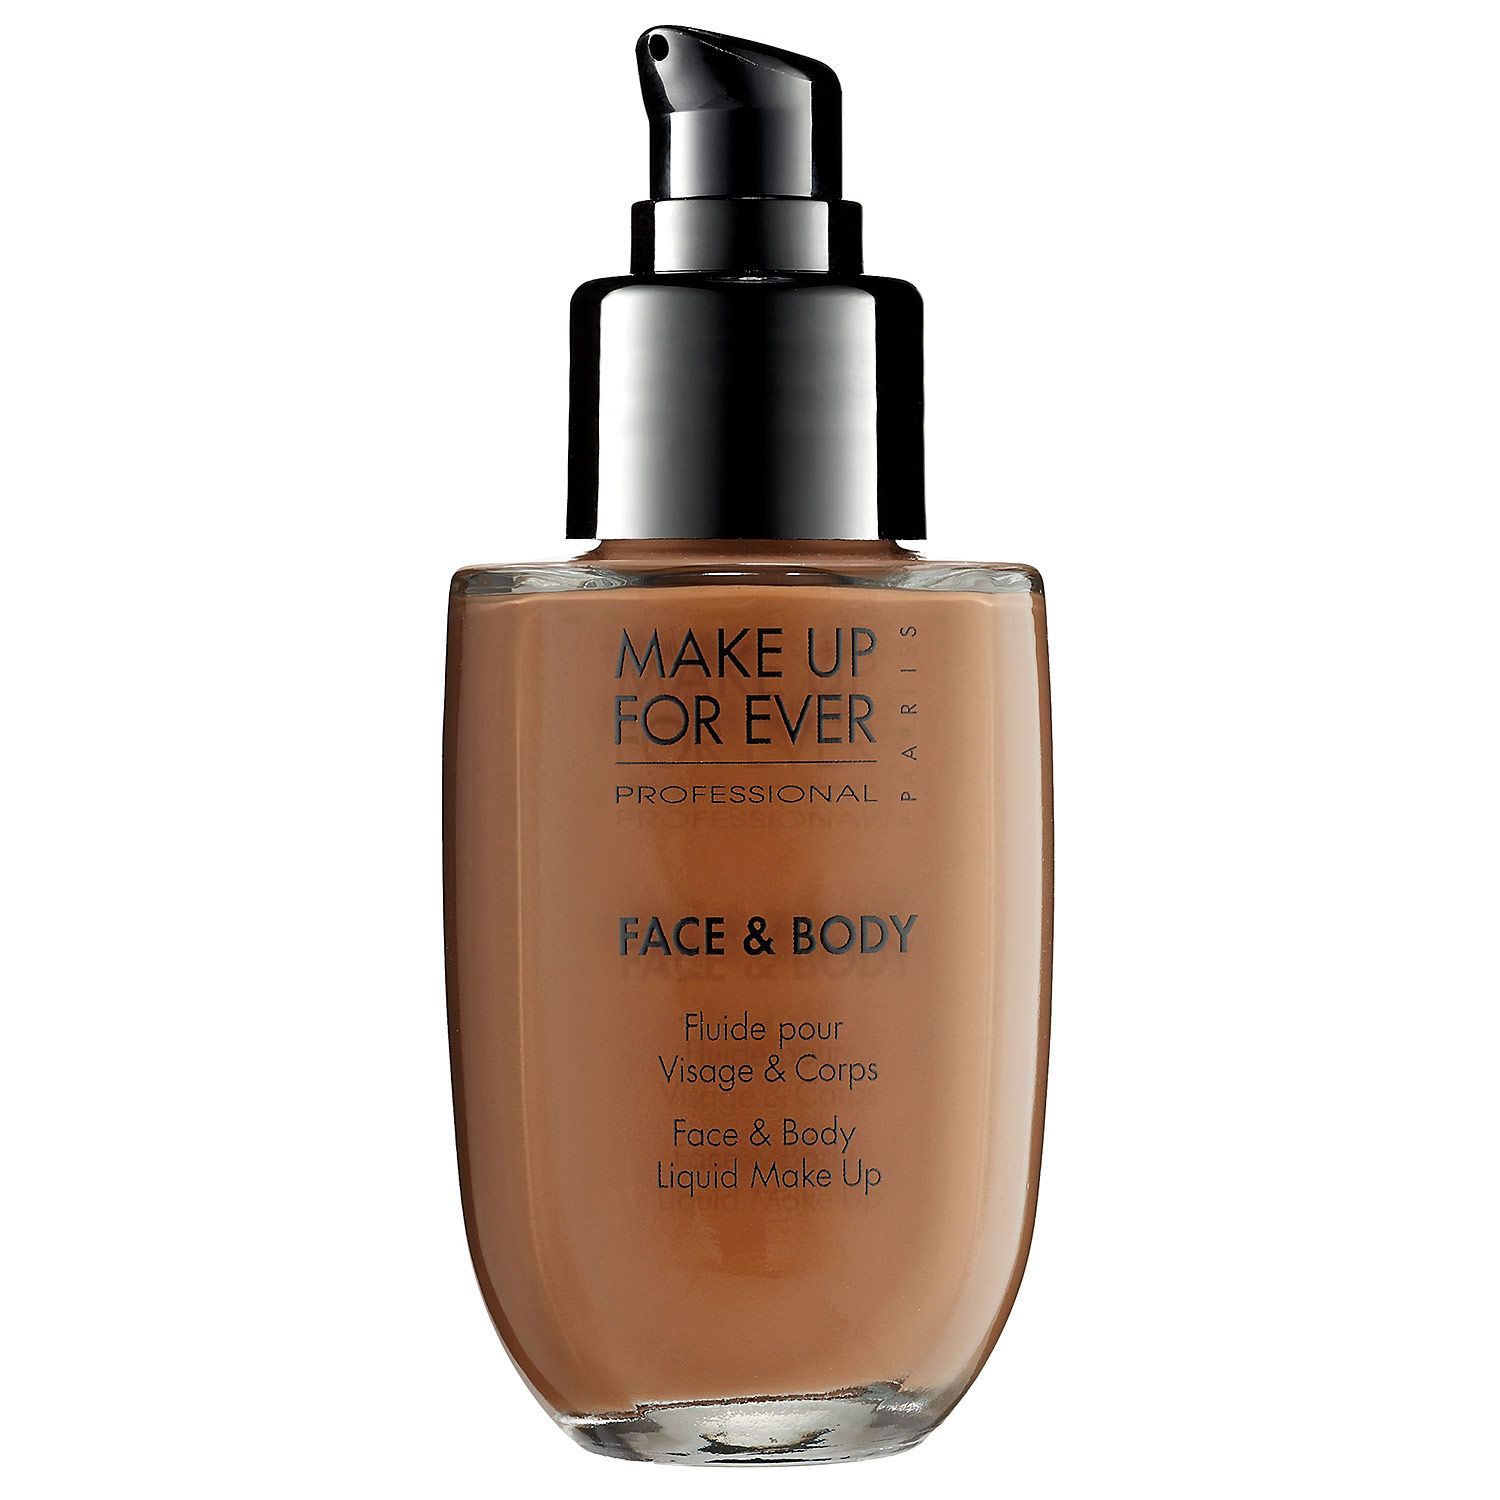 Face & Body Liquid Makeup MAKE UP FOR EVER Sephora